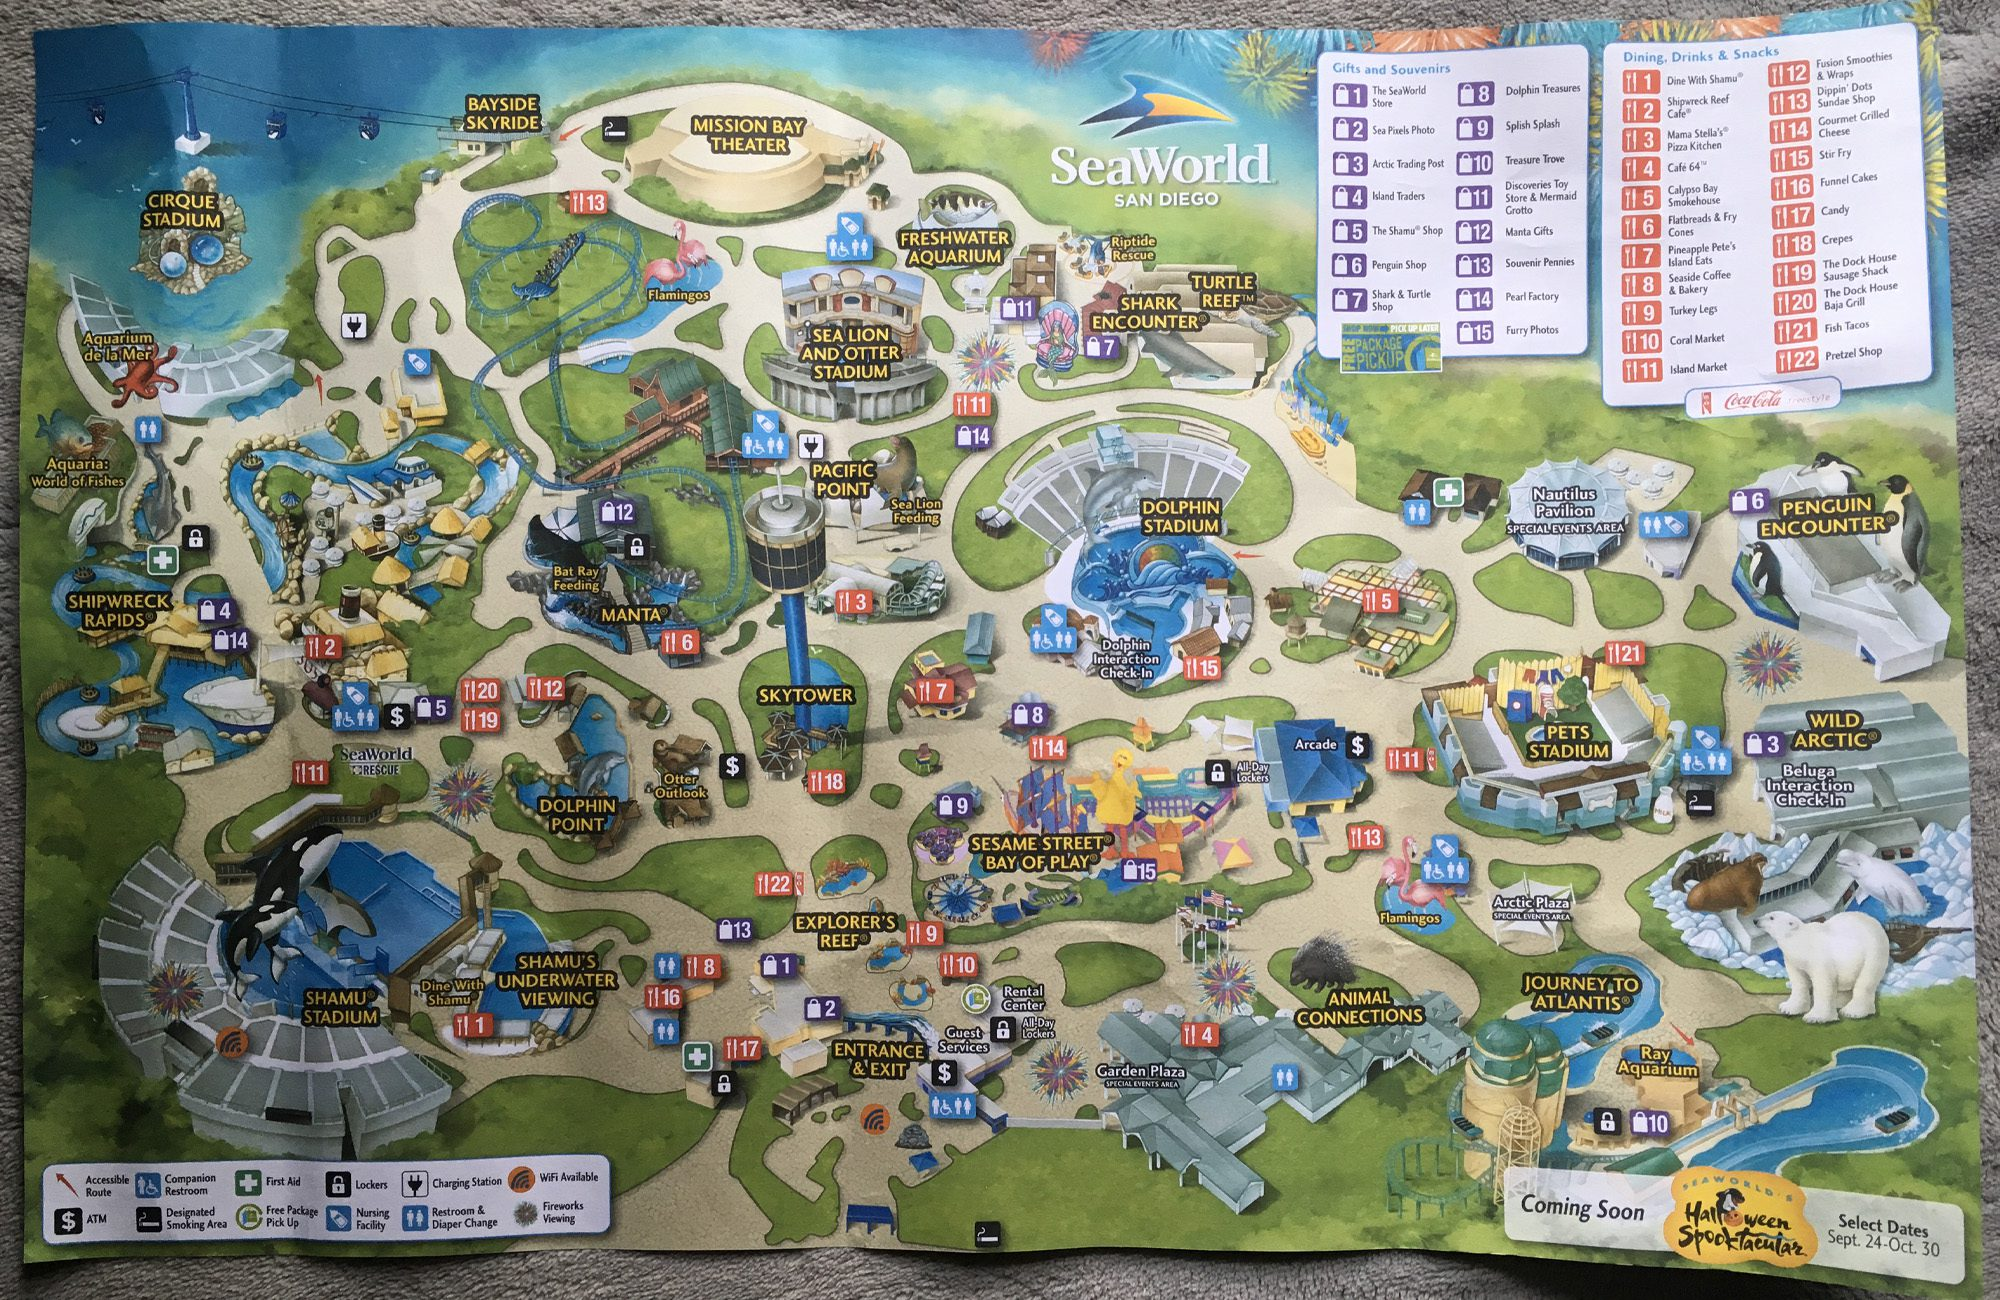 2016 SeaWorld San Diego Map image